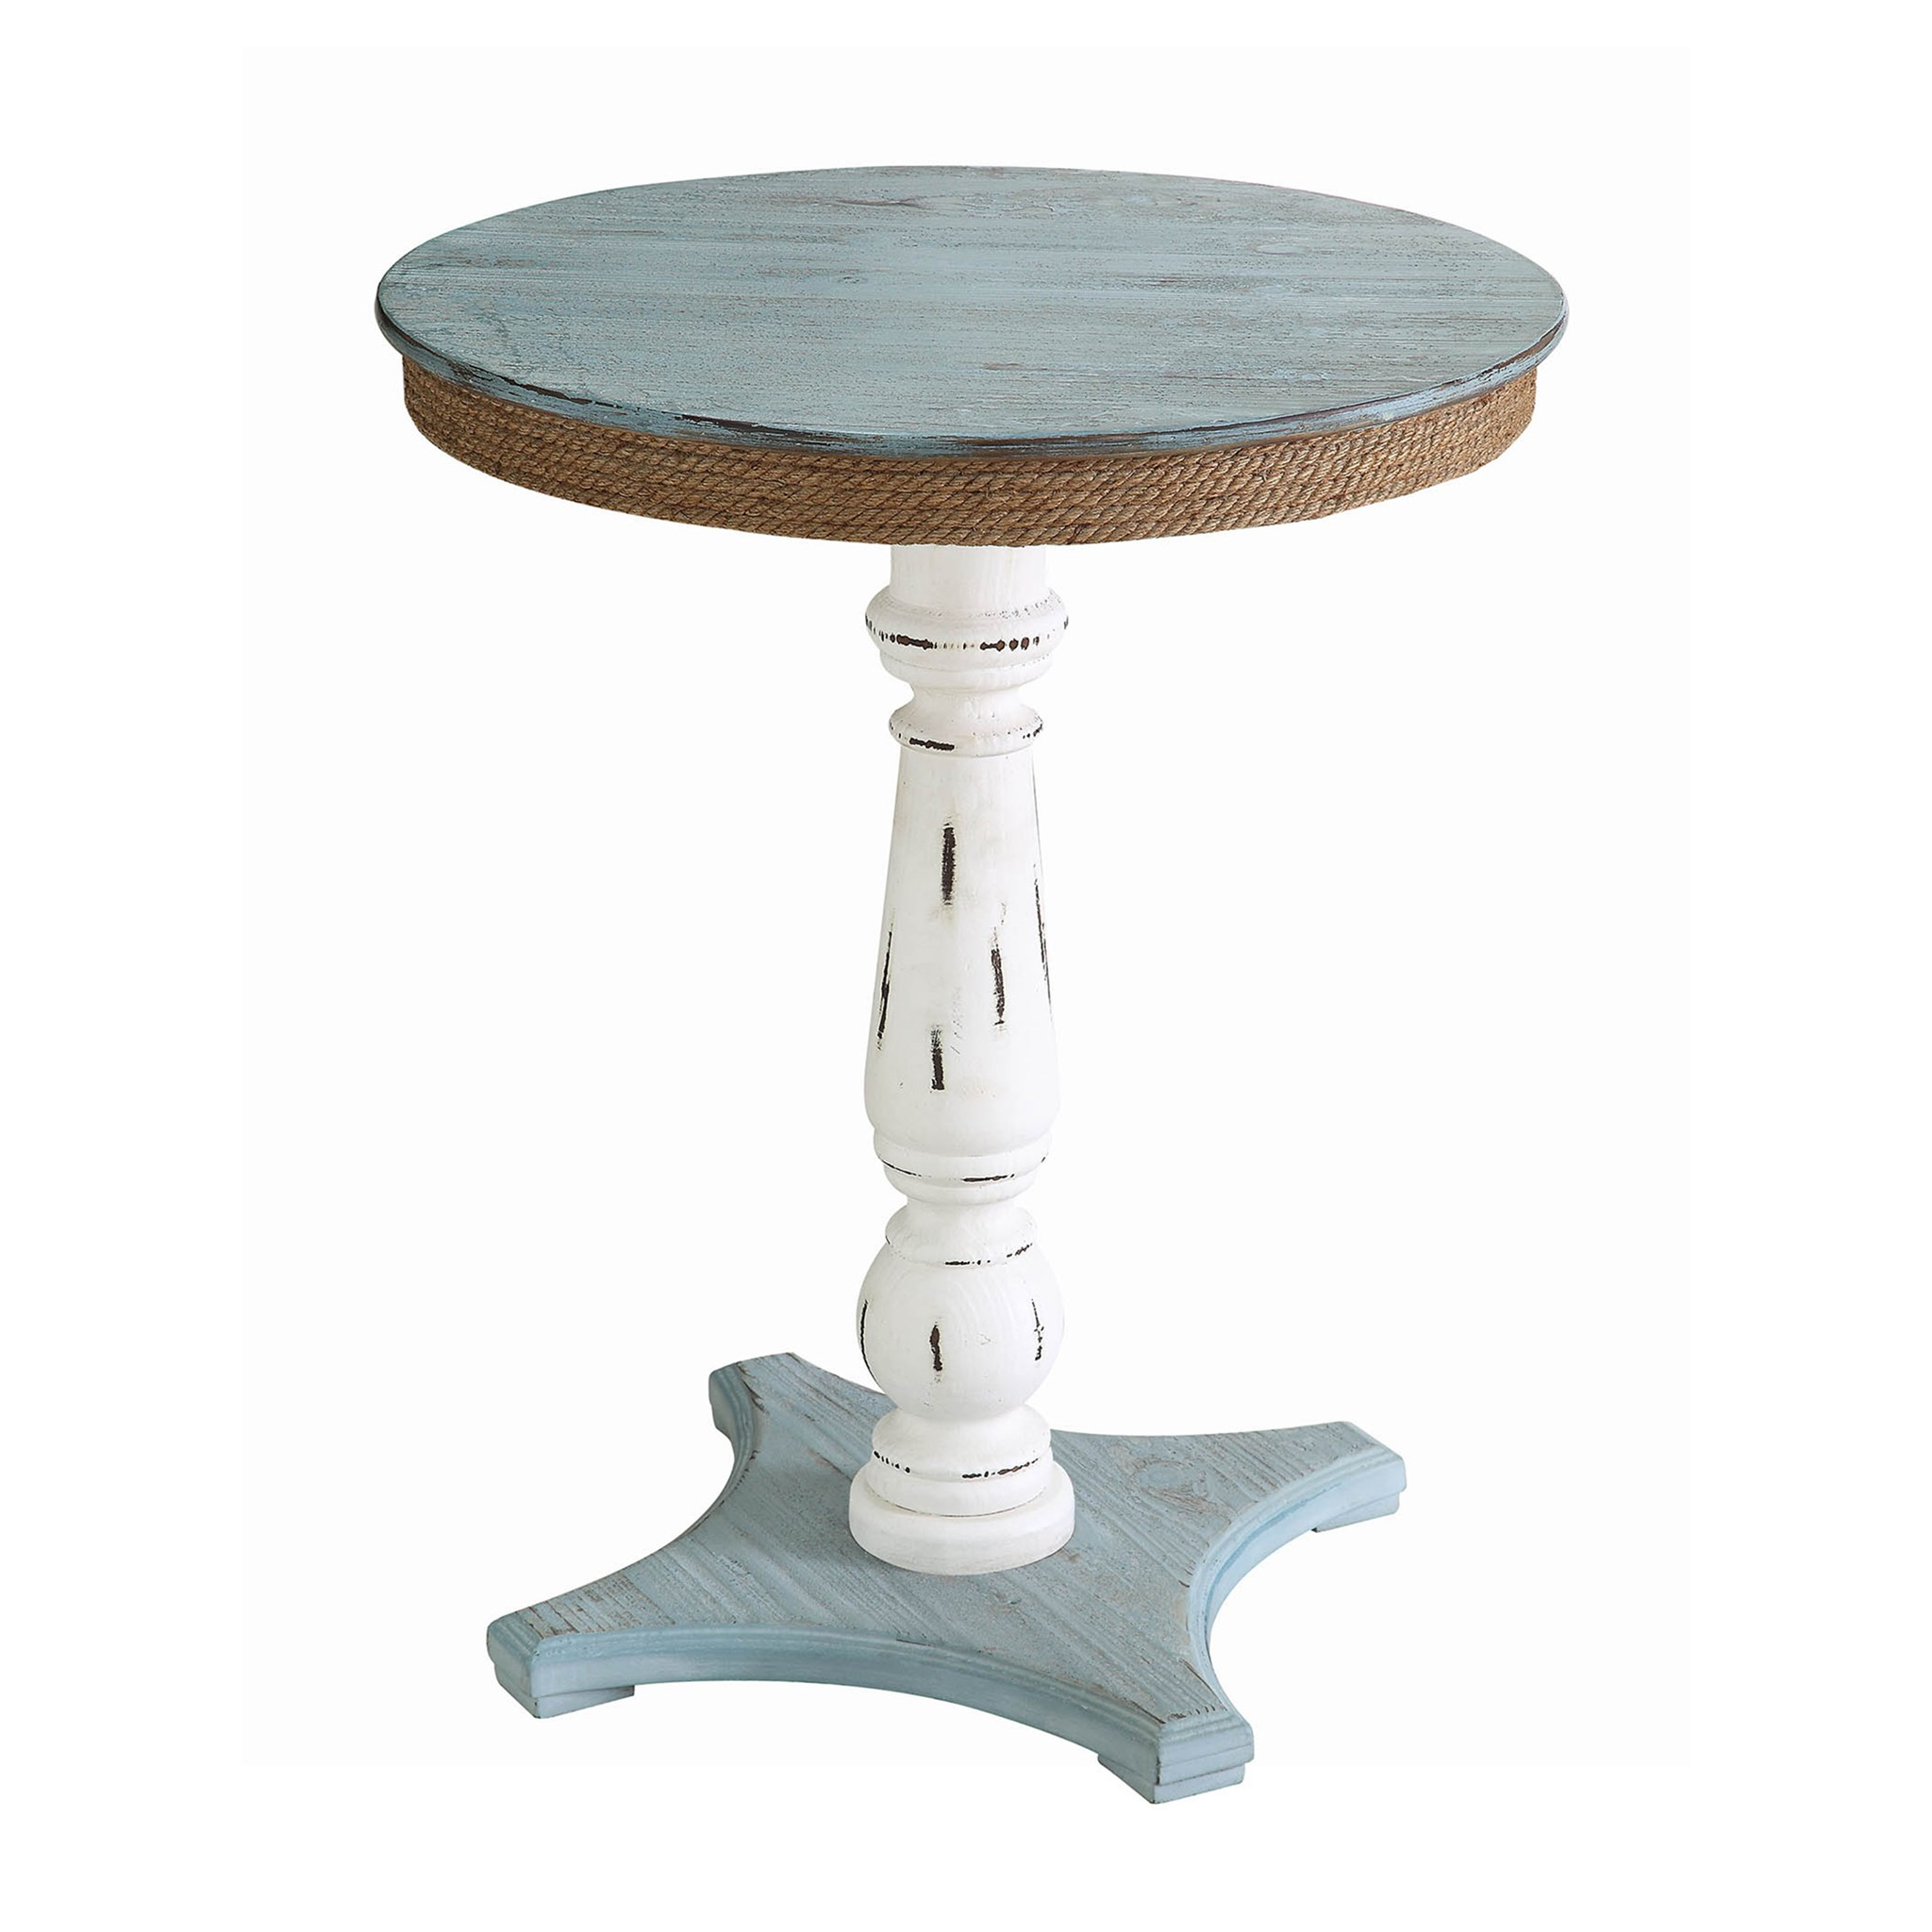 Sea Isle Two Tone Rustic Coastal Wood and Rope Apron Accent Table by Crestview Collection